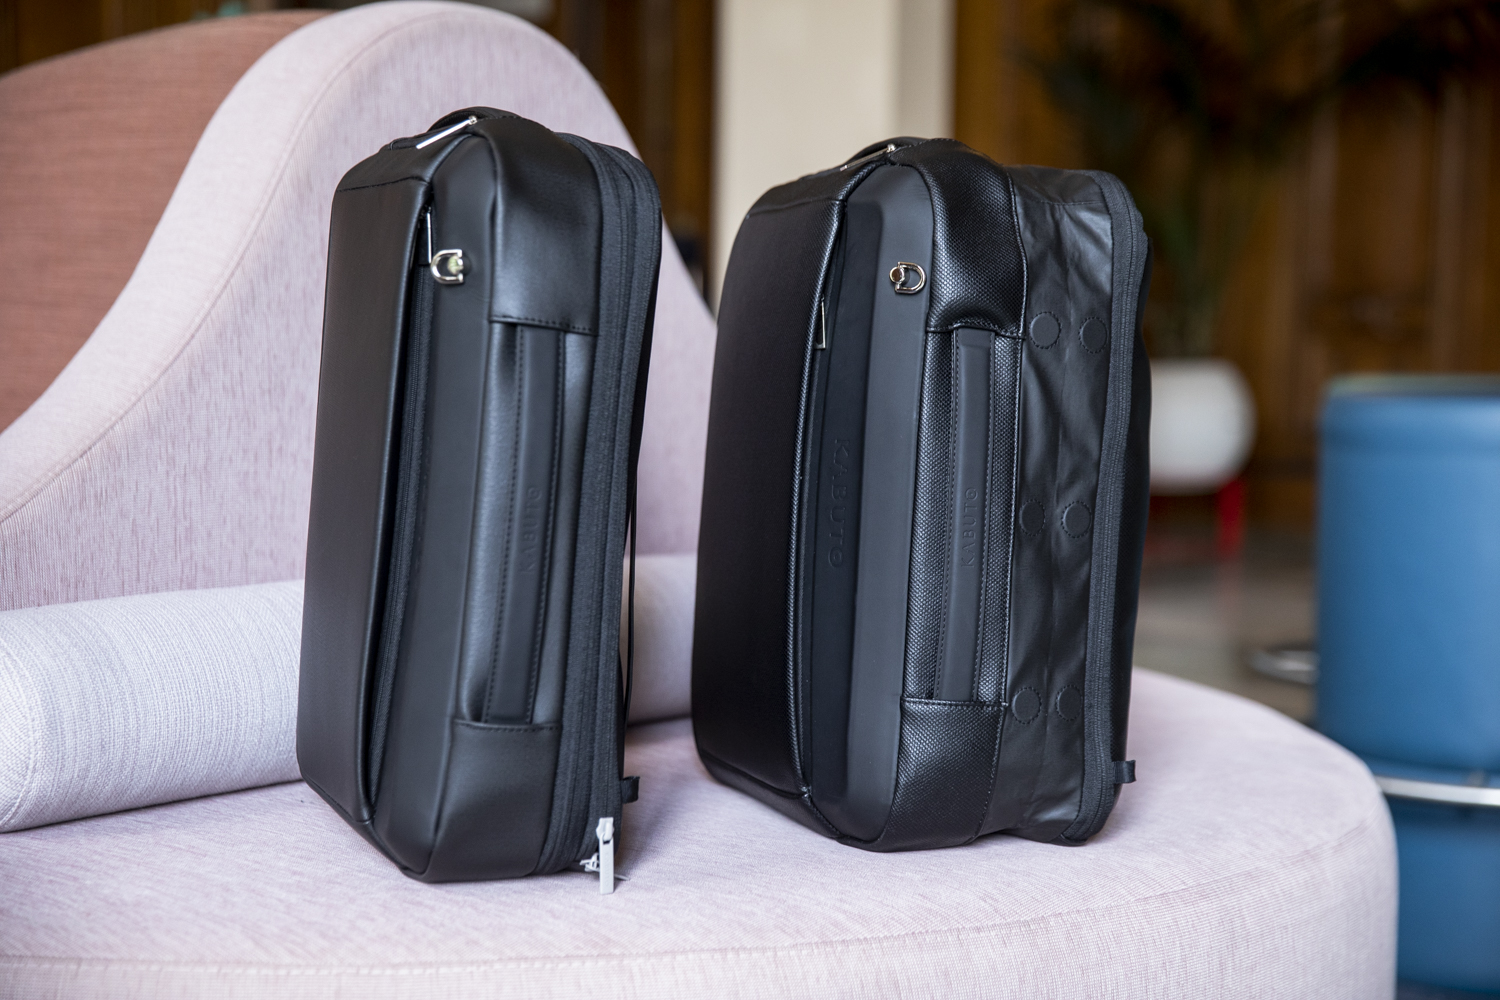 Read more about the article Kabuto releases a larger version of its smart suitcase – TechCrunch